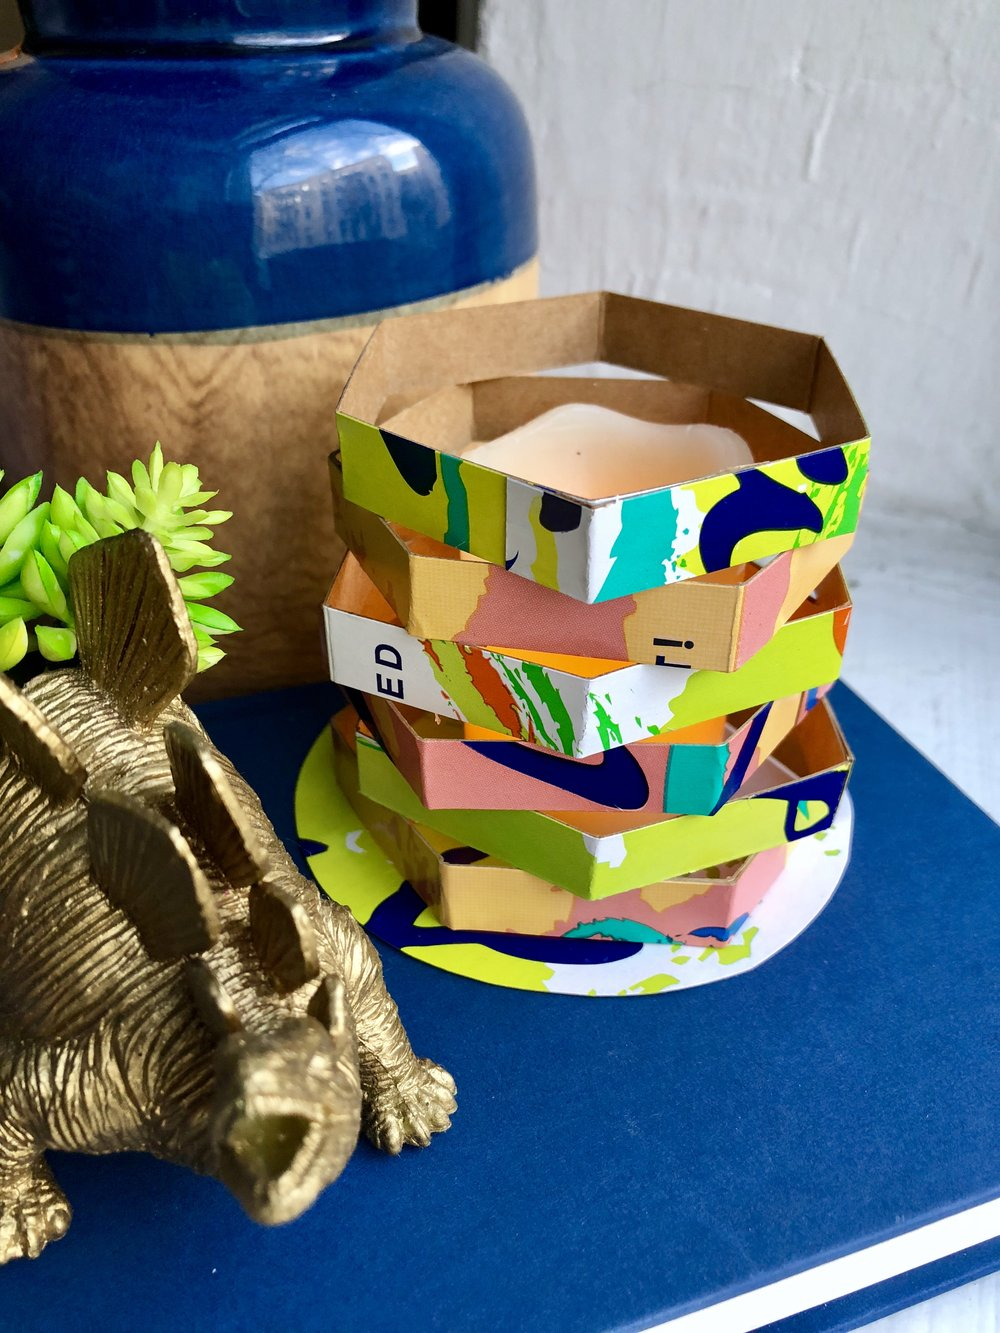 Upcycled La Croix Box Candle for Earth Day